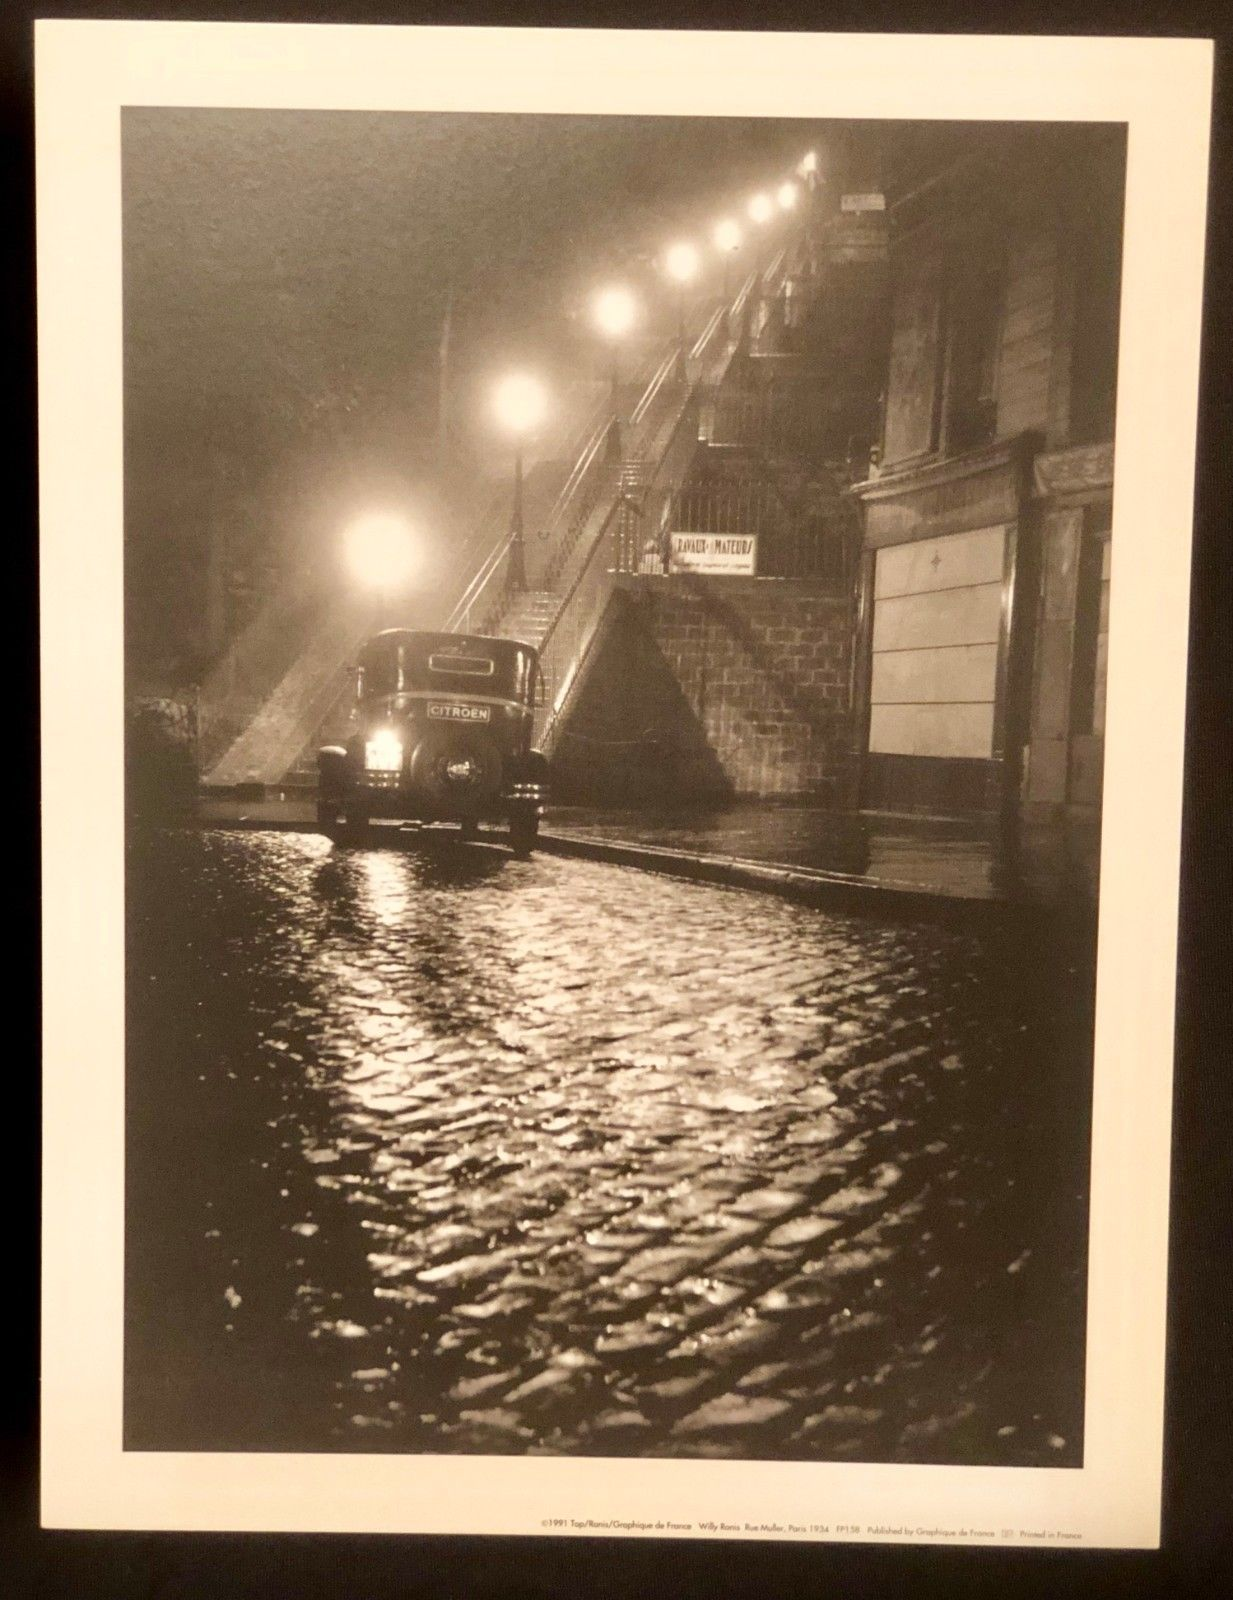 WILLY RONIS Photograph Rue Muller Paris Night 9x12 Lithograph Portfolio Print